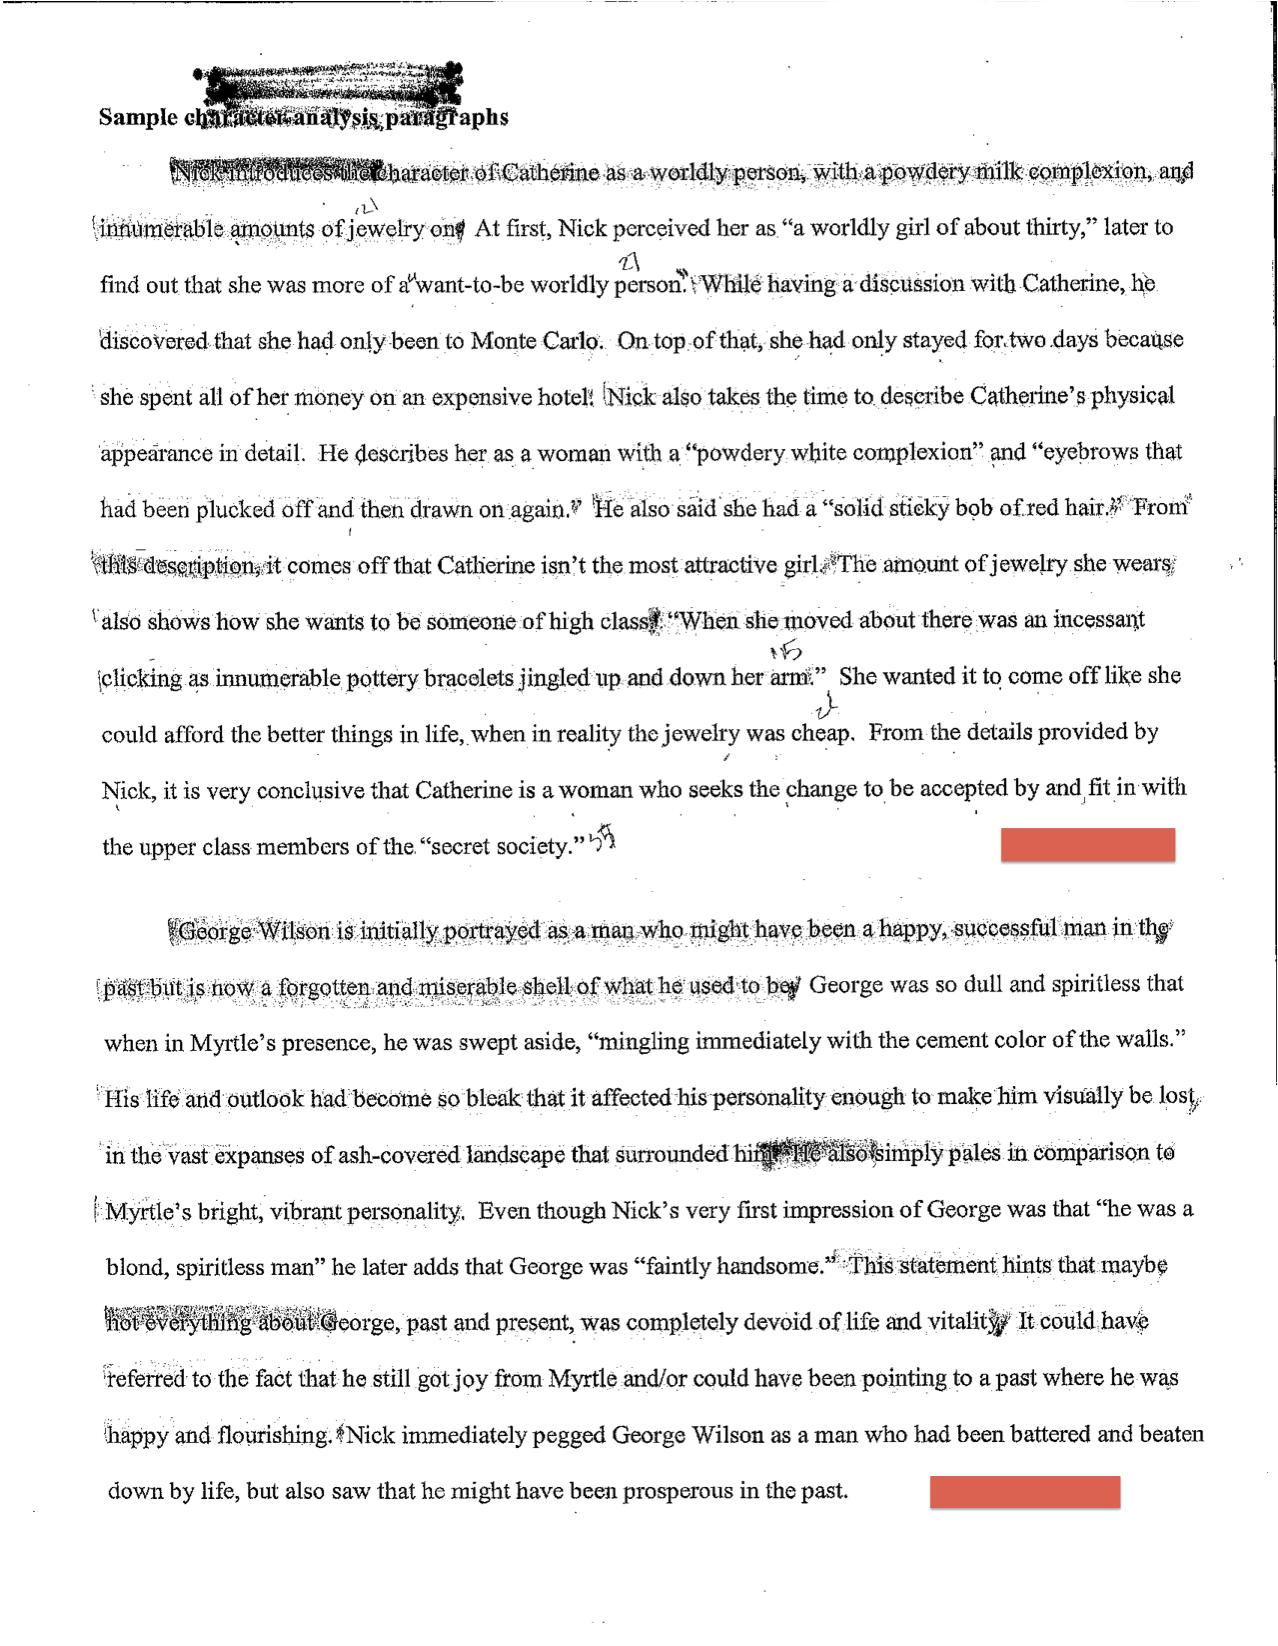 024 Argumentative Research Essay Topics Example Para Singular Interesting For College Students Full